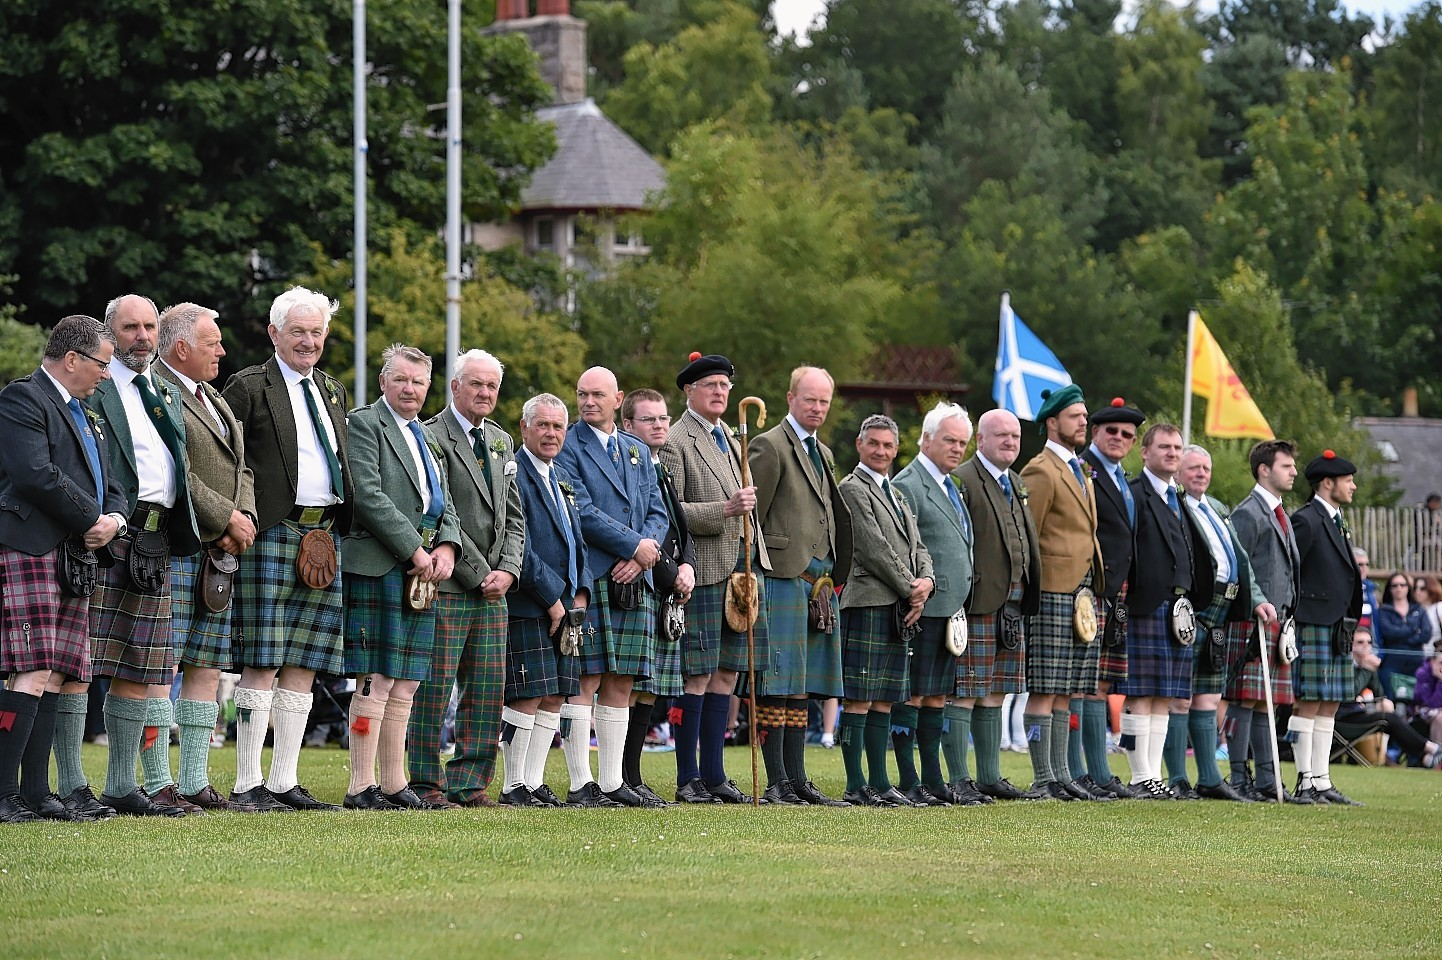 Aboyne Highland Games - Opening ceremony. Picture by COLIN RENNIE